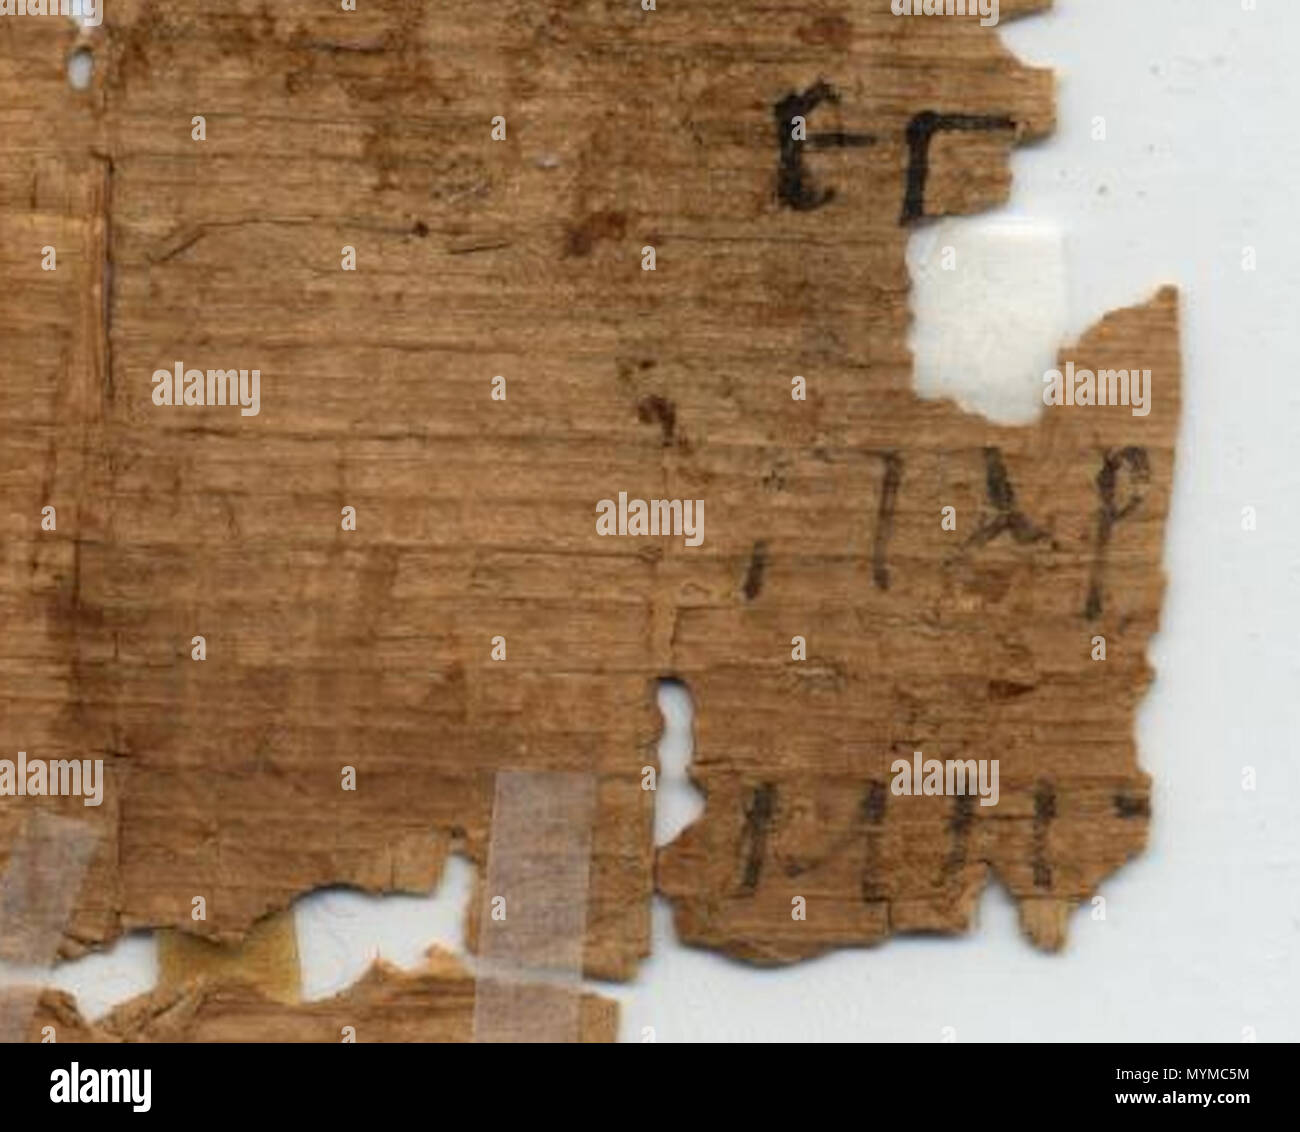 . English: Papyrus 1, flyleaf εγεν̣[ παρ[ μητ̣[ The text is very fragmentary, but probably says something about Jesus being born by Mary. 3rd century. Unknown 407 Papyrus 1 - flyleaf - Stock Image